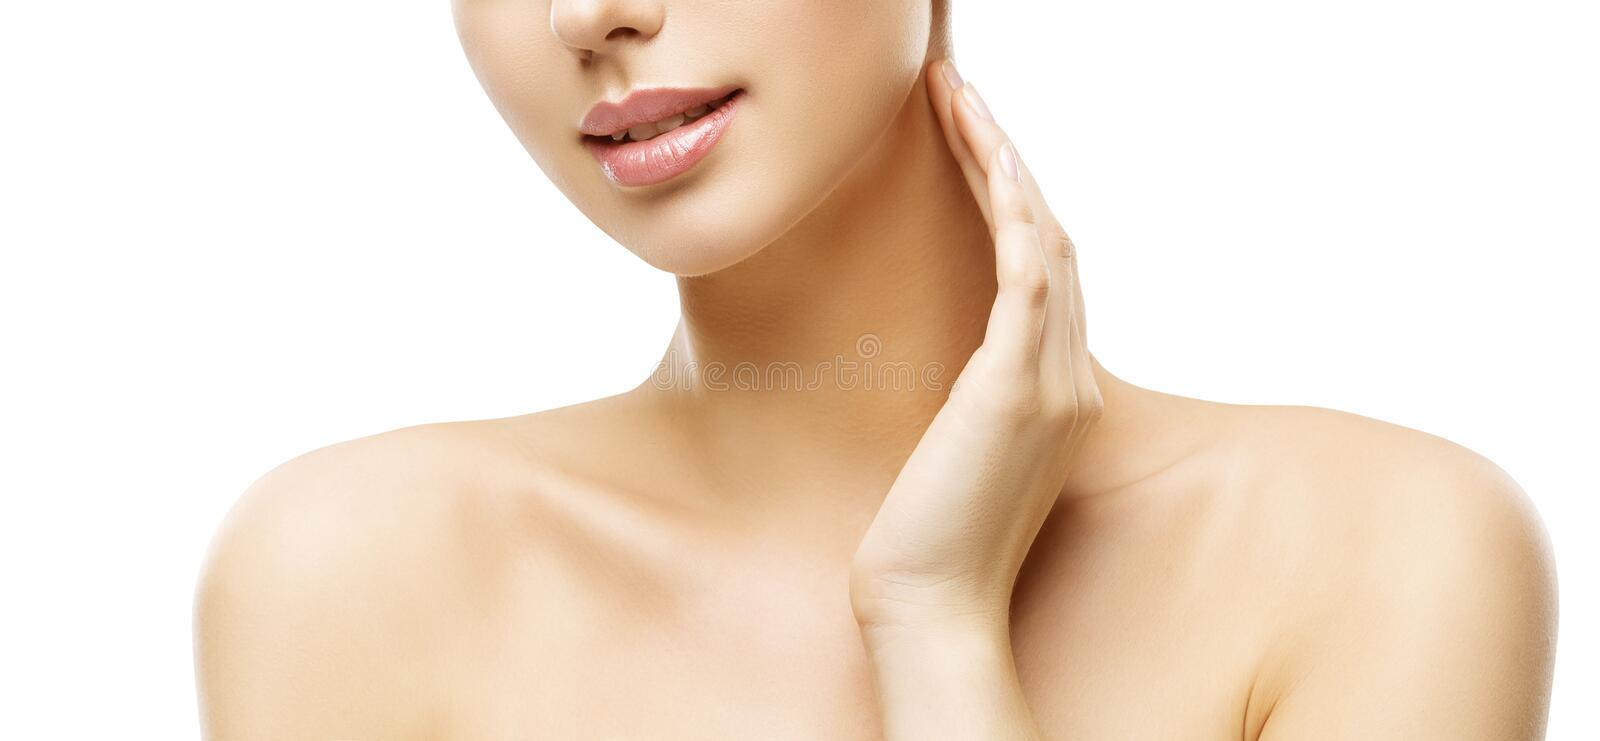 Neck Skin Care, Woman Face Makeup and Lips Beauty Treatment. Model Touch Neck by Hand, Isolated on White Background royalty free stock photos